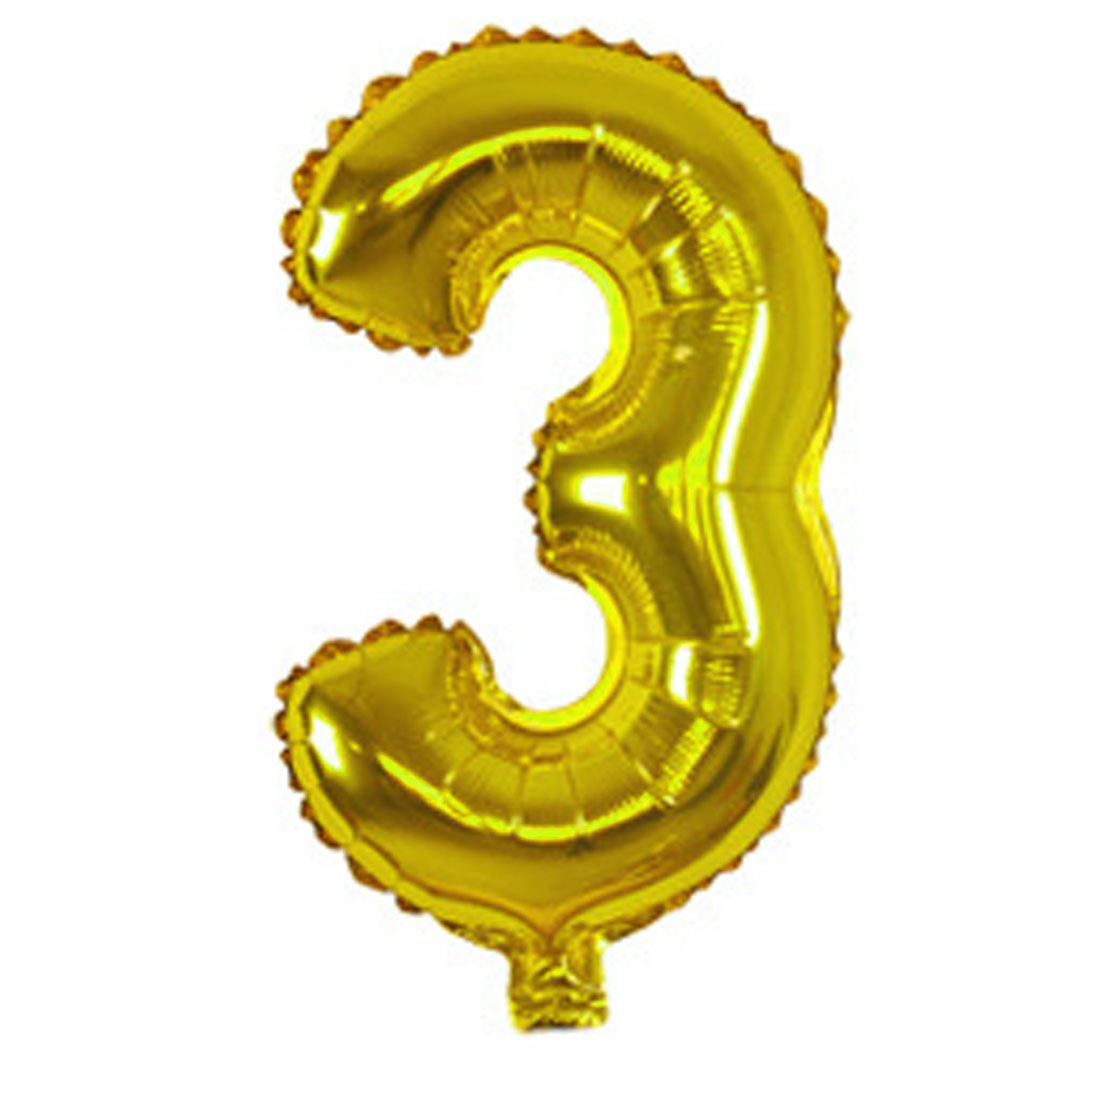 Foil Number 3 Shape Helium Balloon Birthday Wedding Party Decor Gold Tone 16""